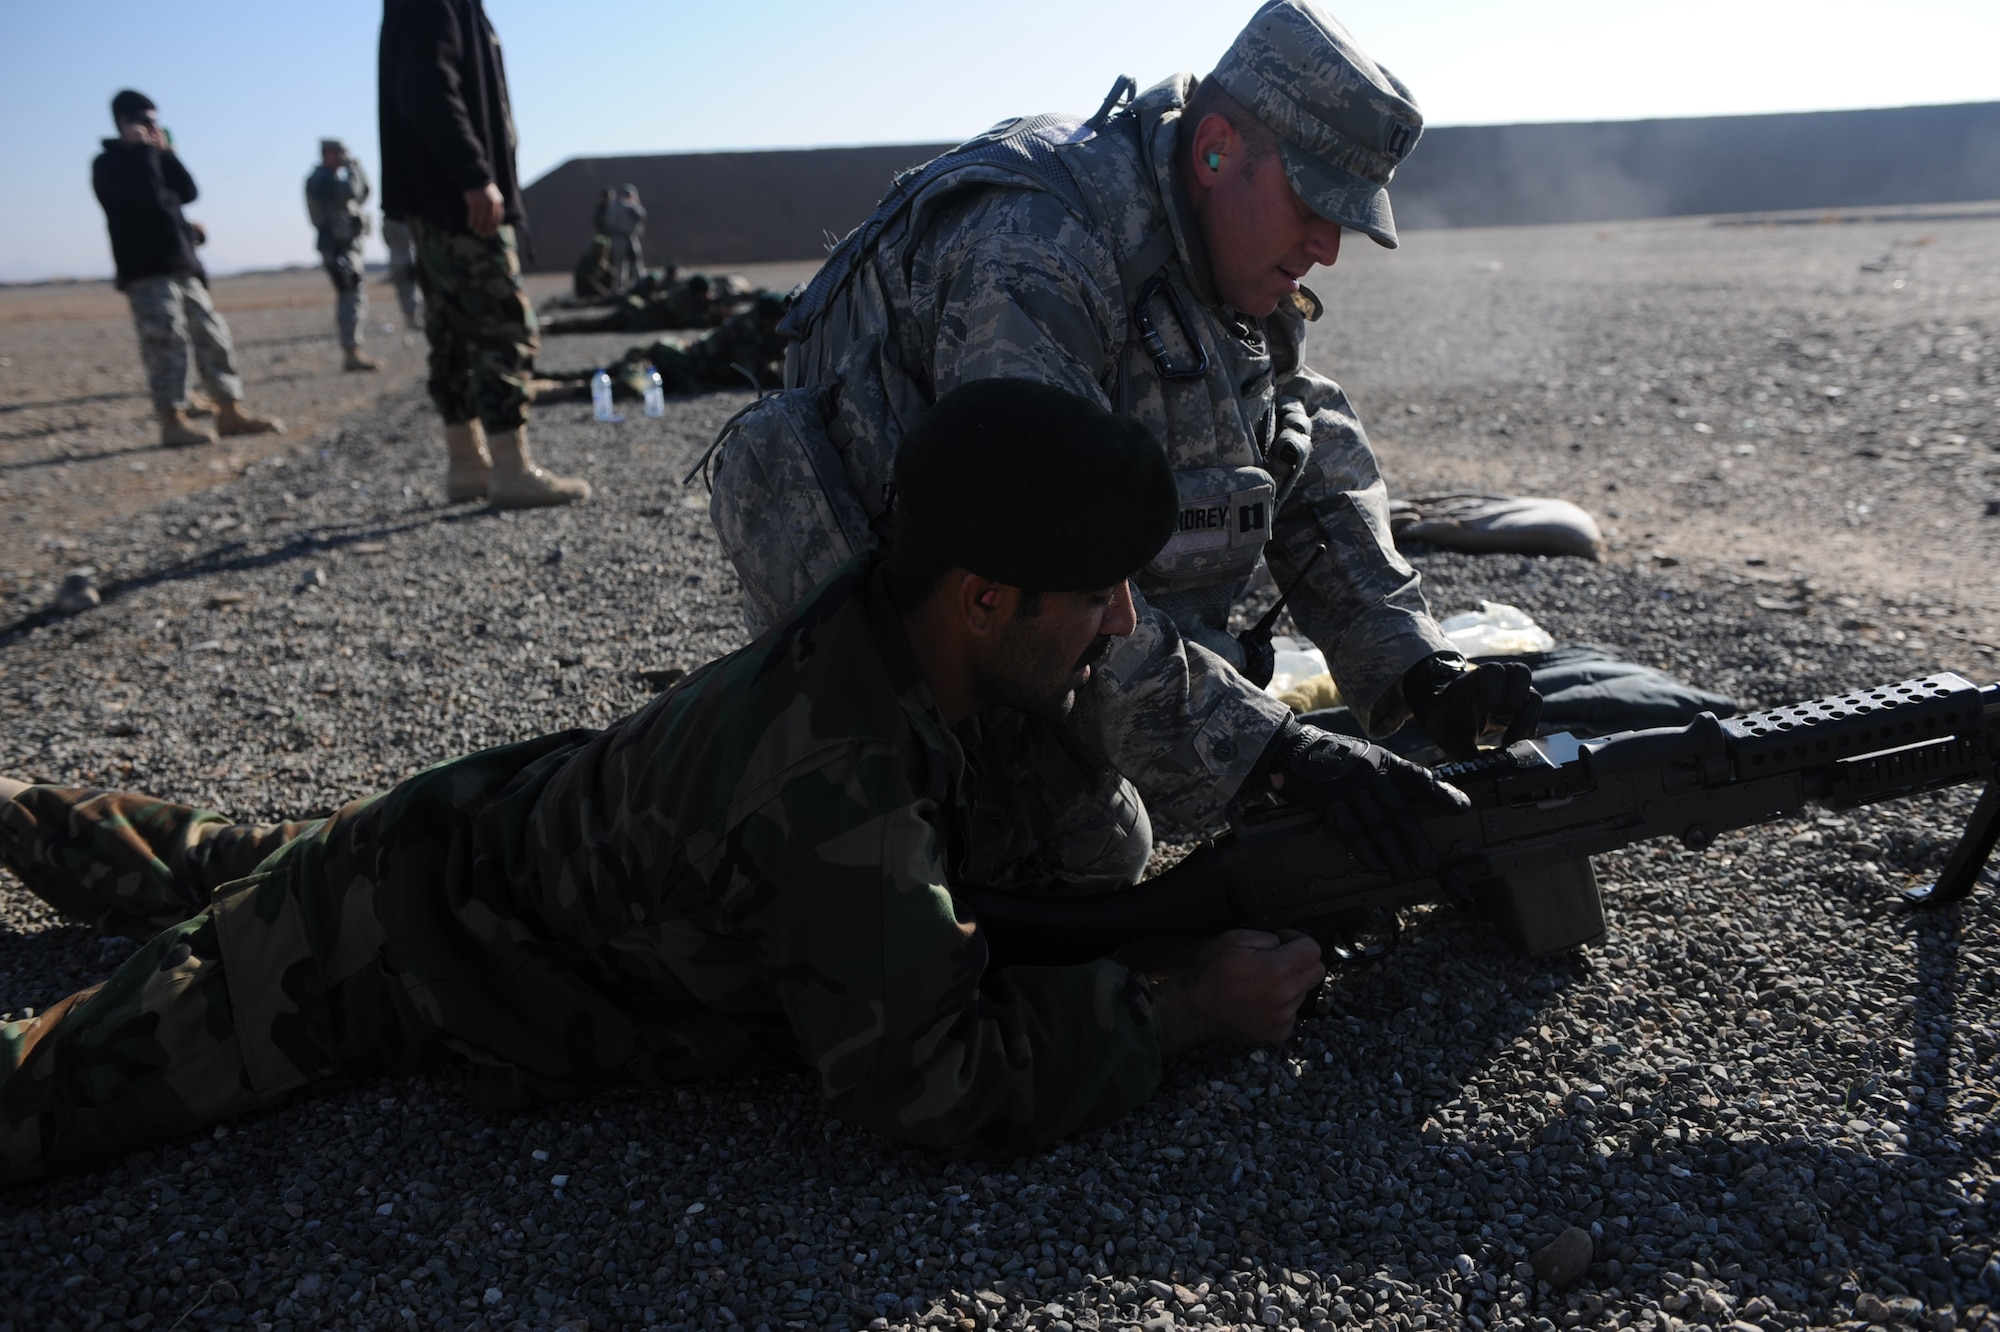 Capt. Shane A. Cordrey, 738th Air Expeditionary Advisory Group lead security forces advisor, shows an Afghanistan National Army Air Corps soldier how to correct an M-240B machine gun malfunction during weapons familiarization training in Kandahar, Afghanistan, Jan. 4, 2010. Captain Cordrey is deployed from Indiana State University where he is an ROTC instructor in support of Operation Enduring Freedom. (U.S. Air Force photo/Staff Sgt. Manuel J. Martinez/Released)